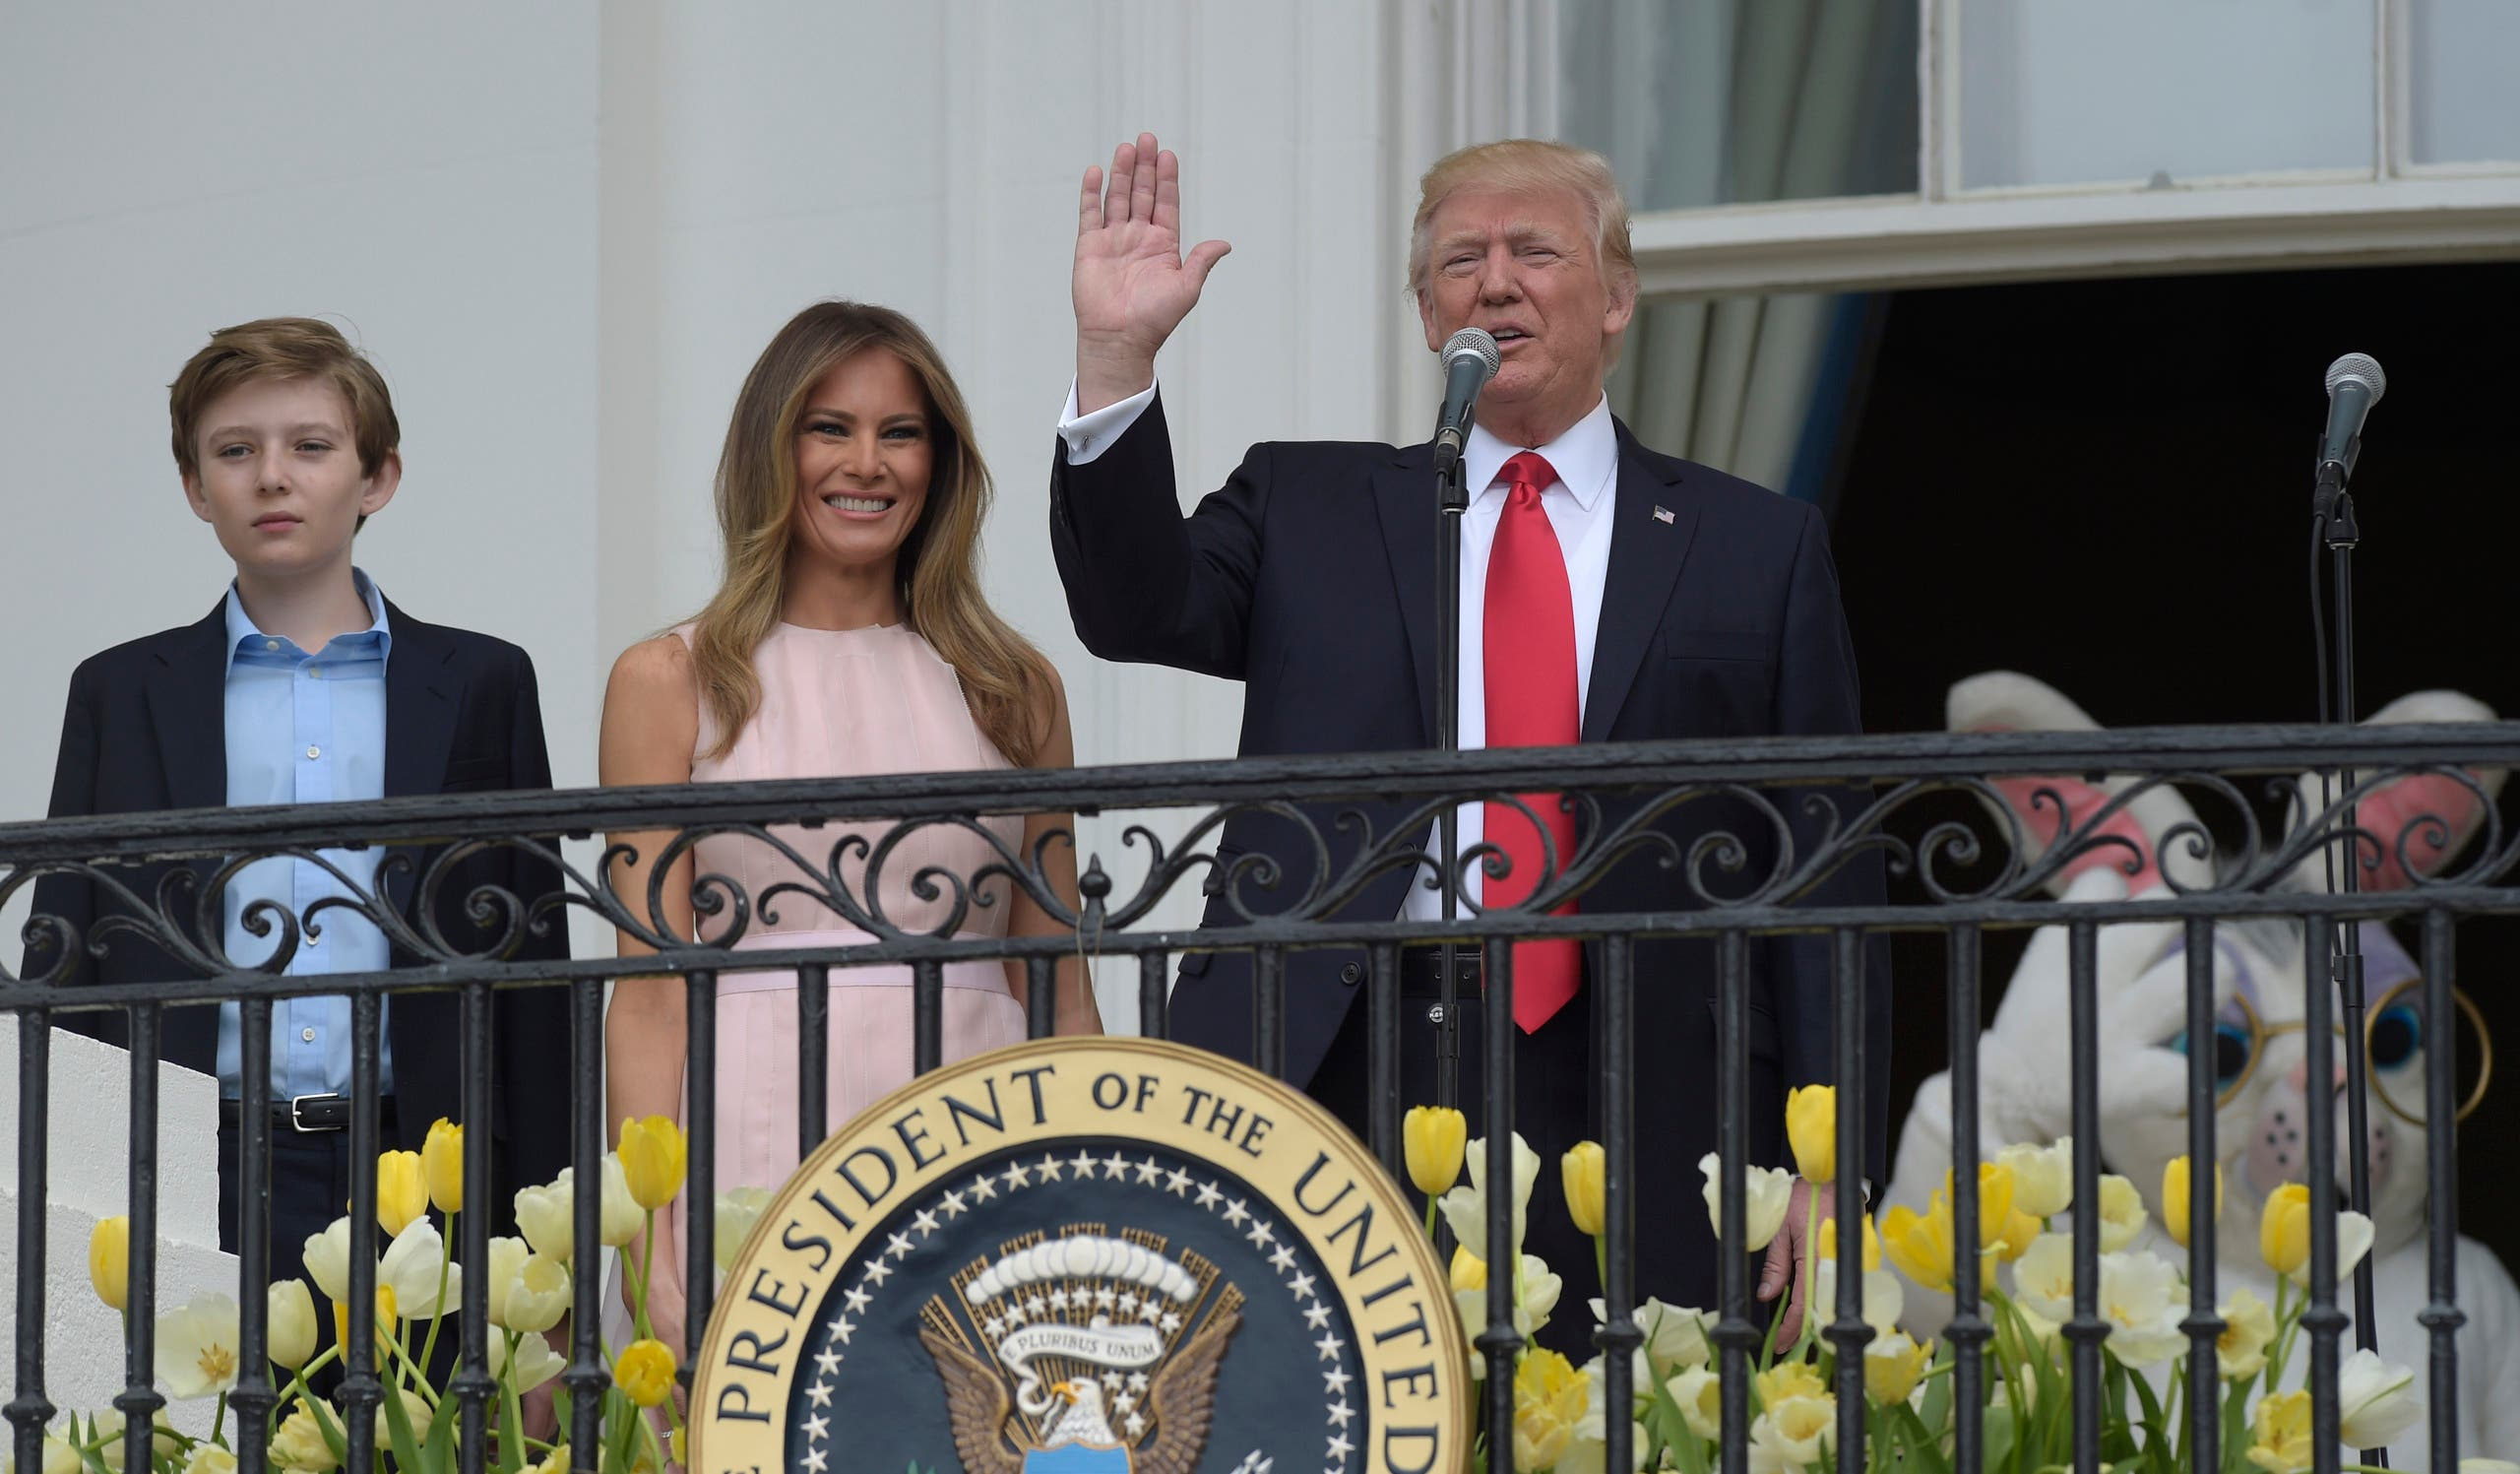 President Donald Trump, with first lady Melania Trump and their son Barron Trump, address the crowd at the annual White House Easter Egg Roll on the South Lawn of the White House in Washington, Monday, April 17, 2017. (AP)